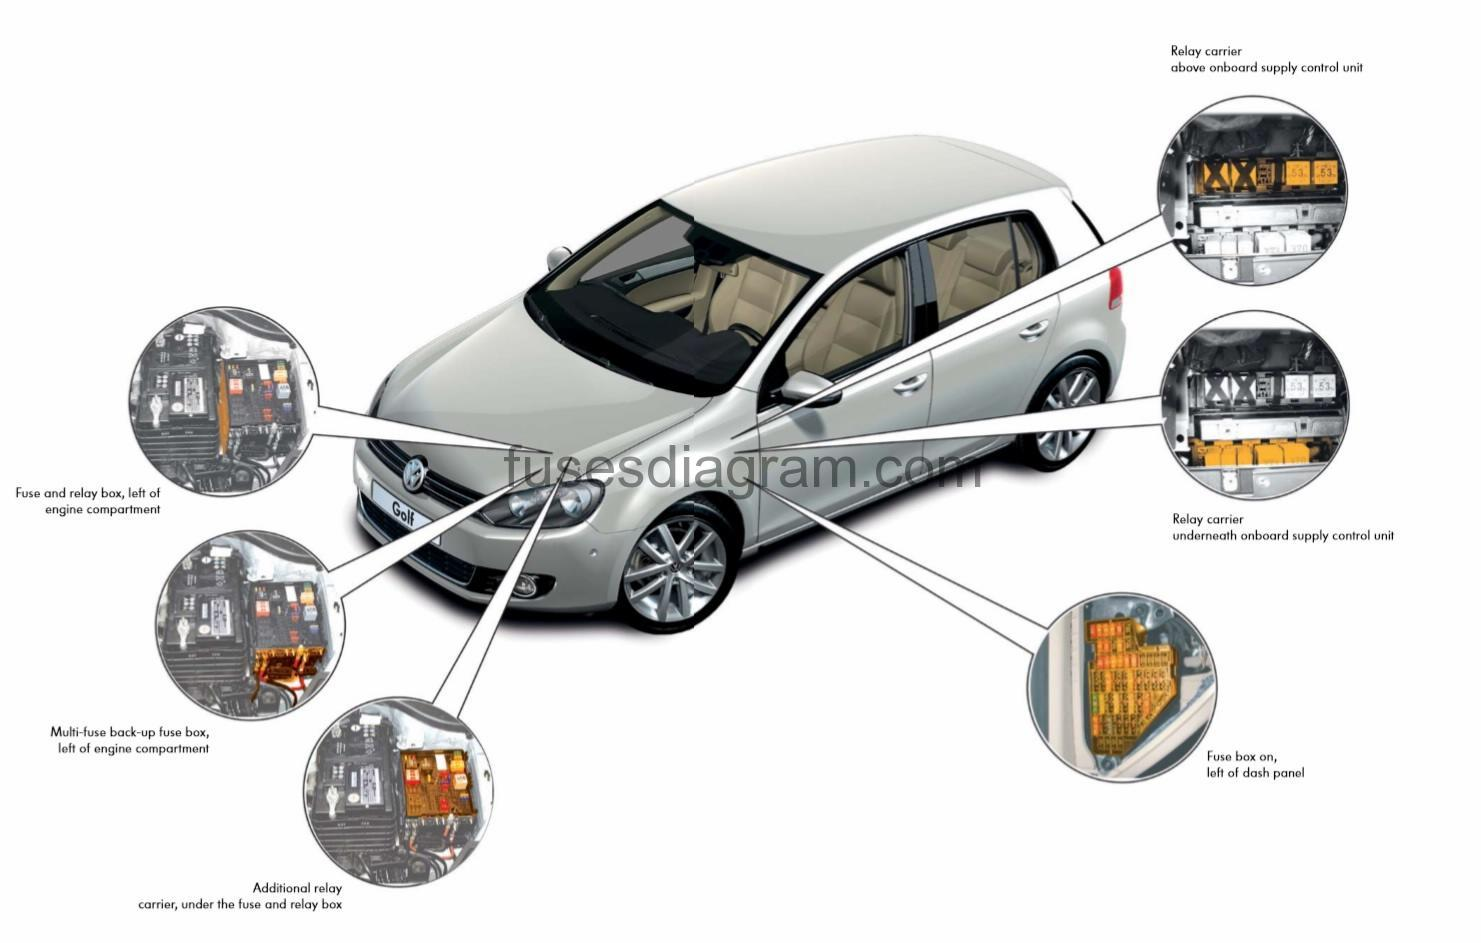 2013 Vw Eos Fuse Diagram Product Wiring Diagrams 1998 Passat Wagon Box Volkswagen Golf 6 1999 Beetle 2012